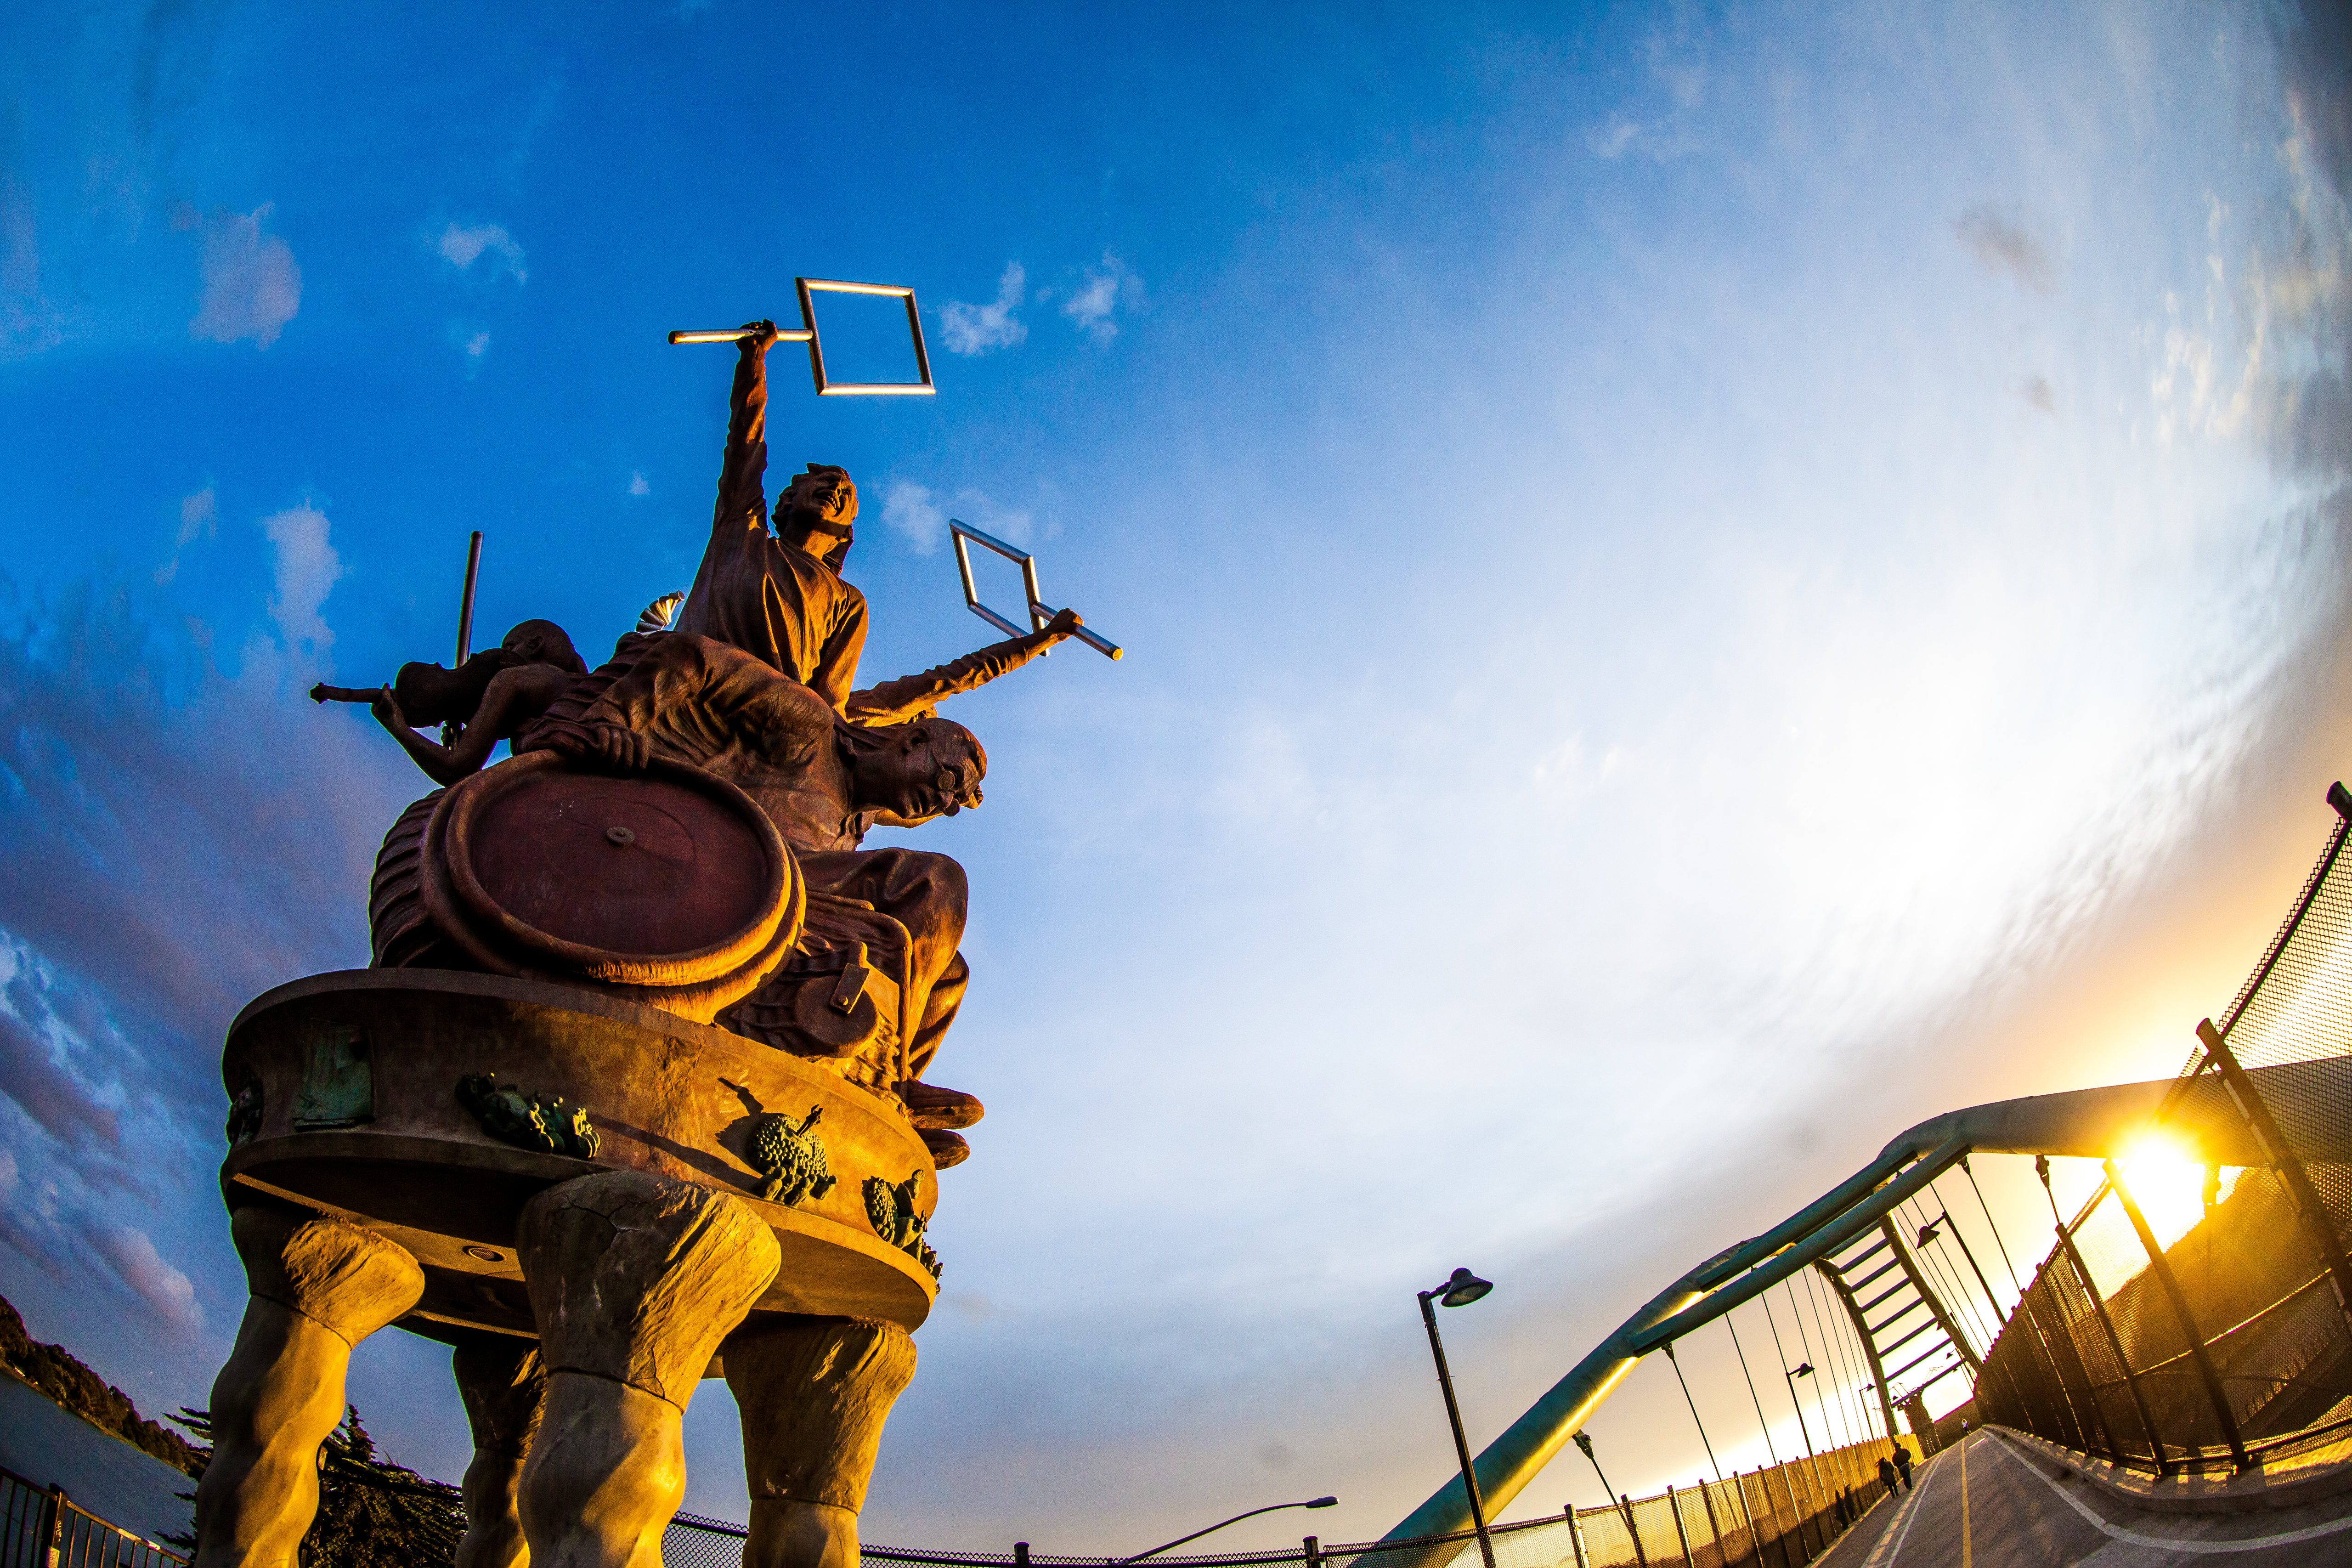 A blue sky highlights a massive reddish sculpture featuring characters protesting.